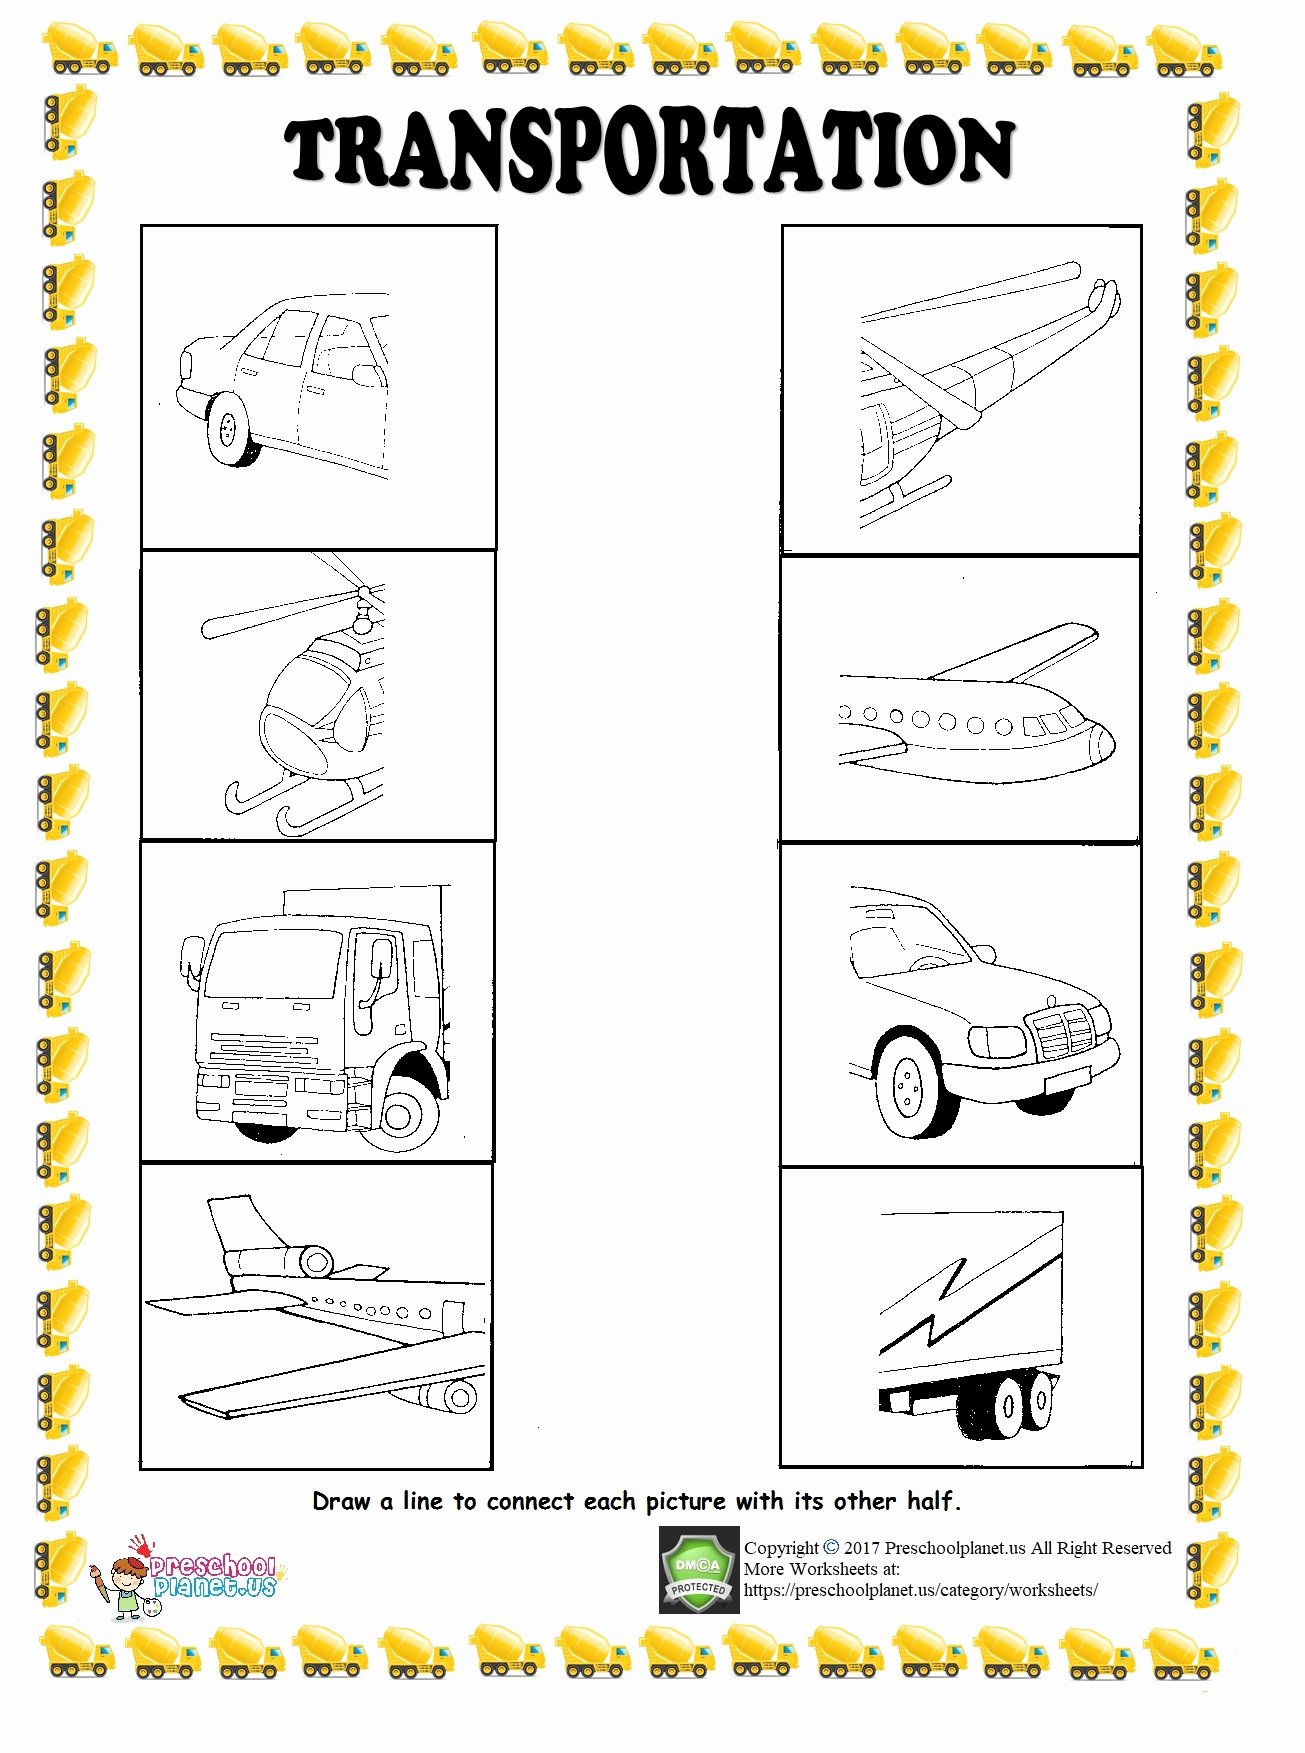 Transportation Worksheets For Preschoolers